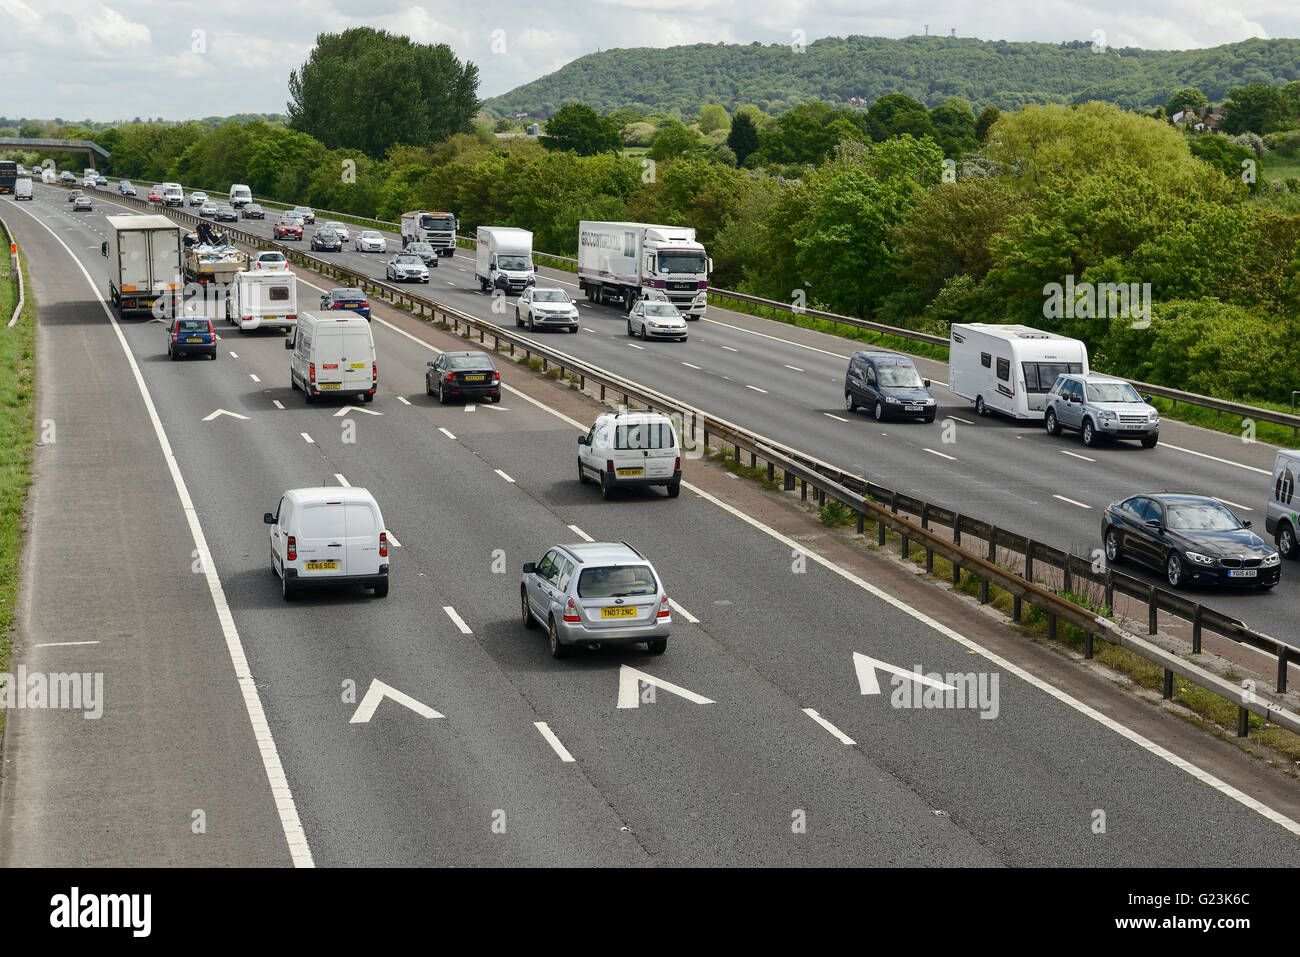 Traffic on the M56 motorway in Cheshire UK - Stock Image